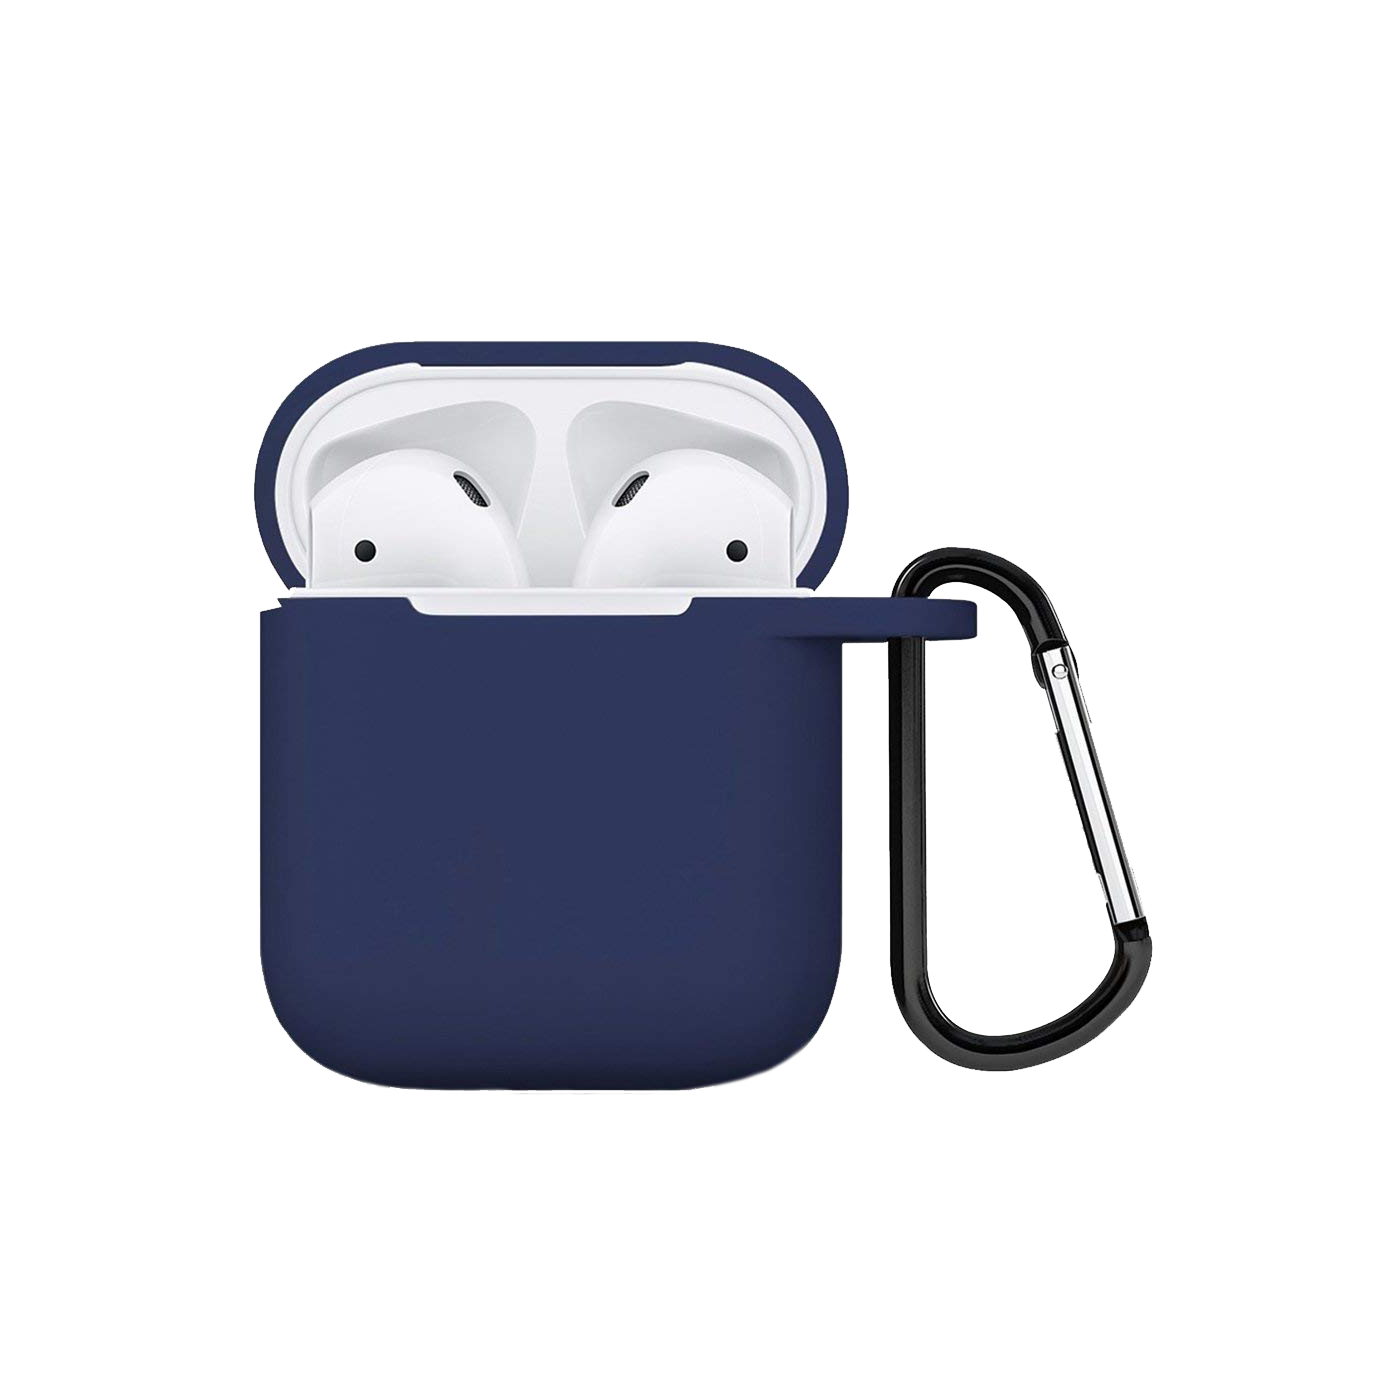 Airpods clipart mini. Buy sell electronics zalu